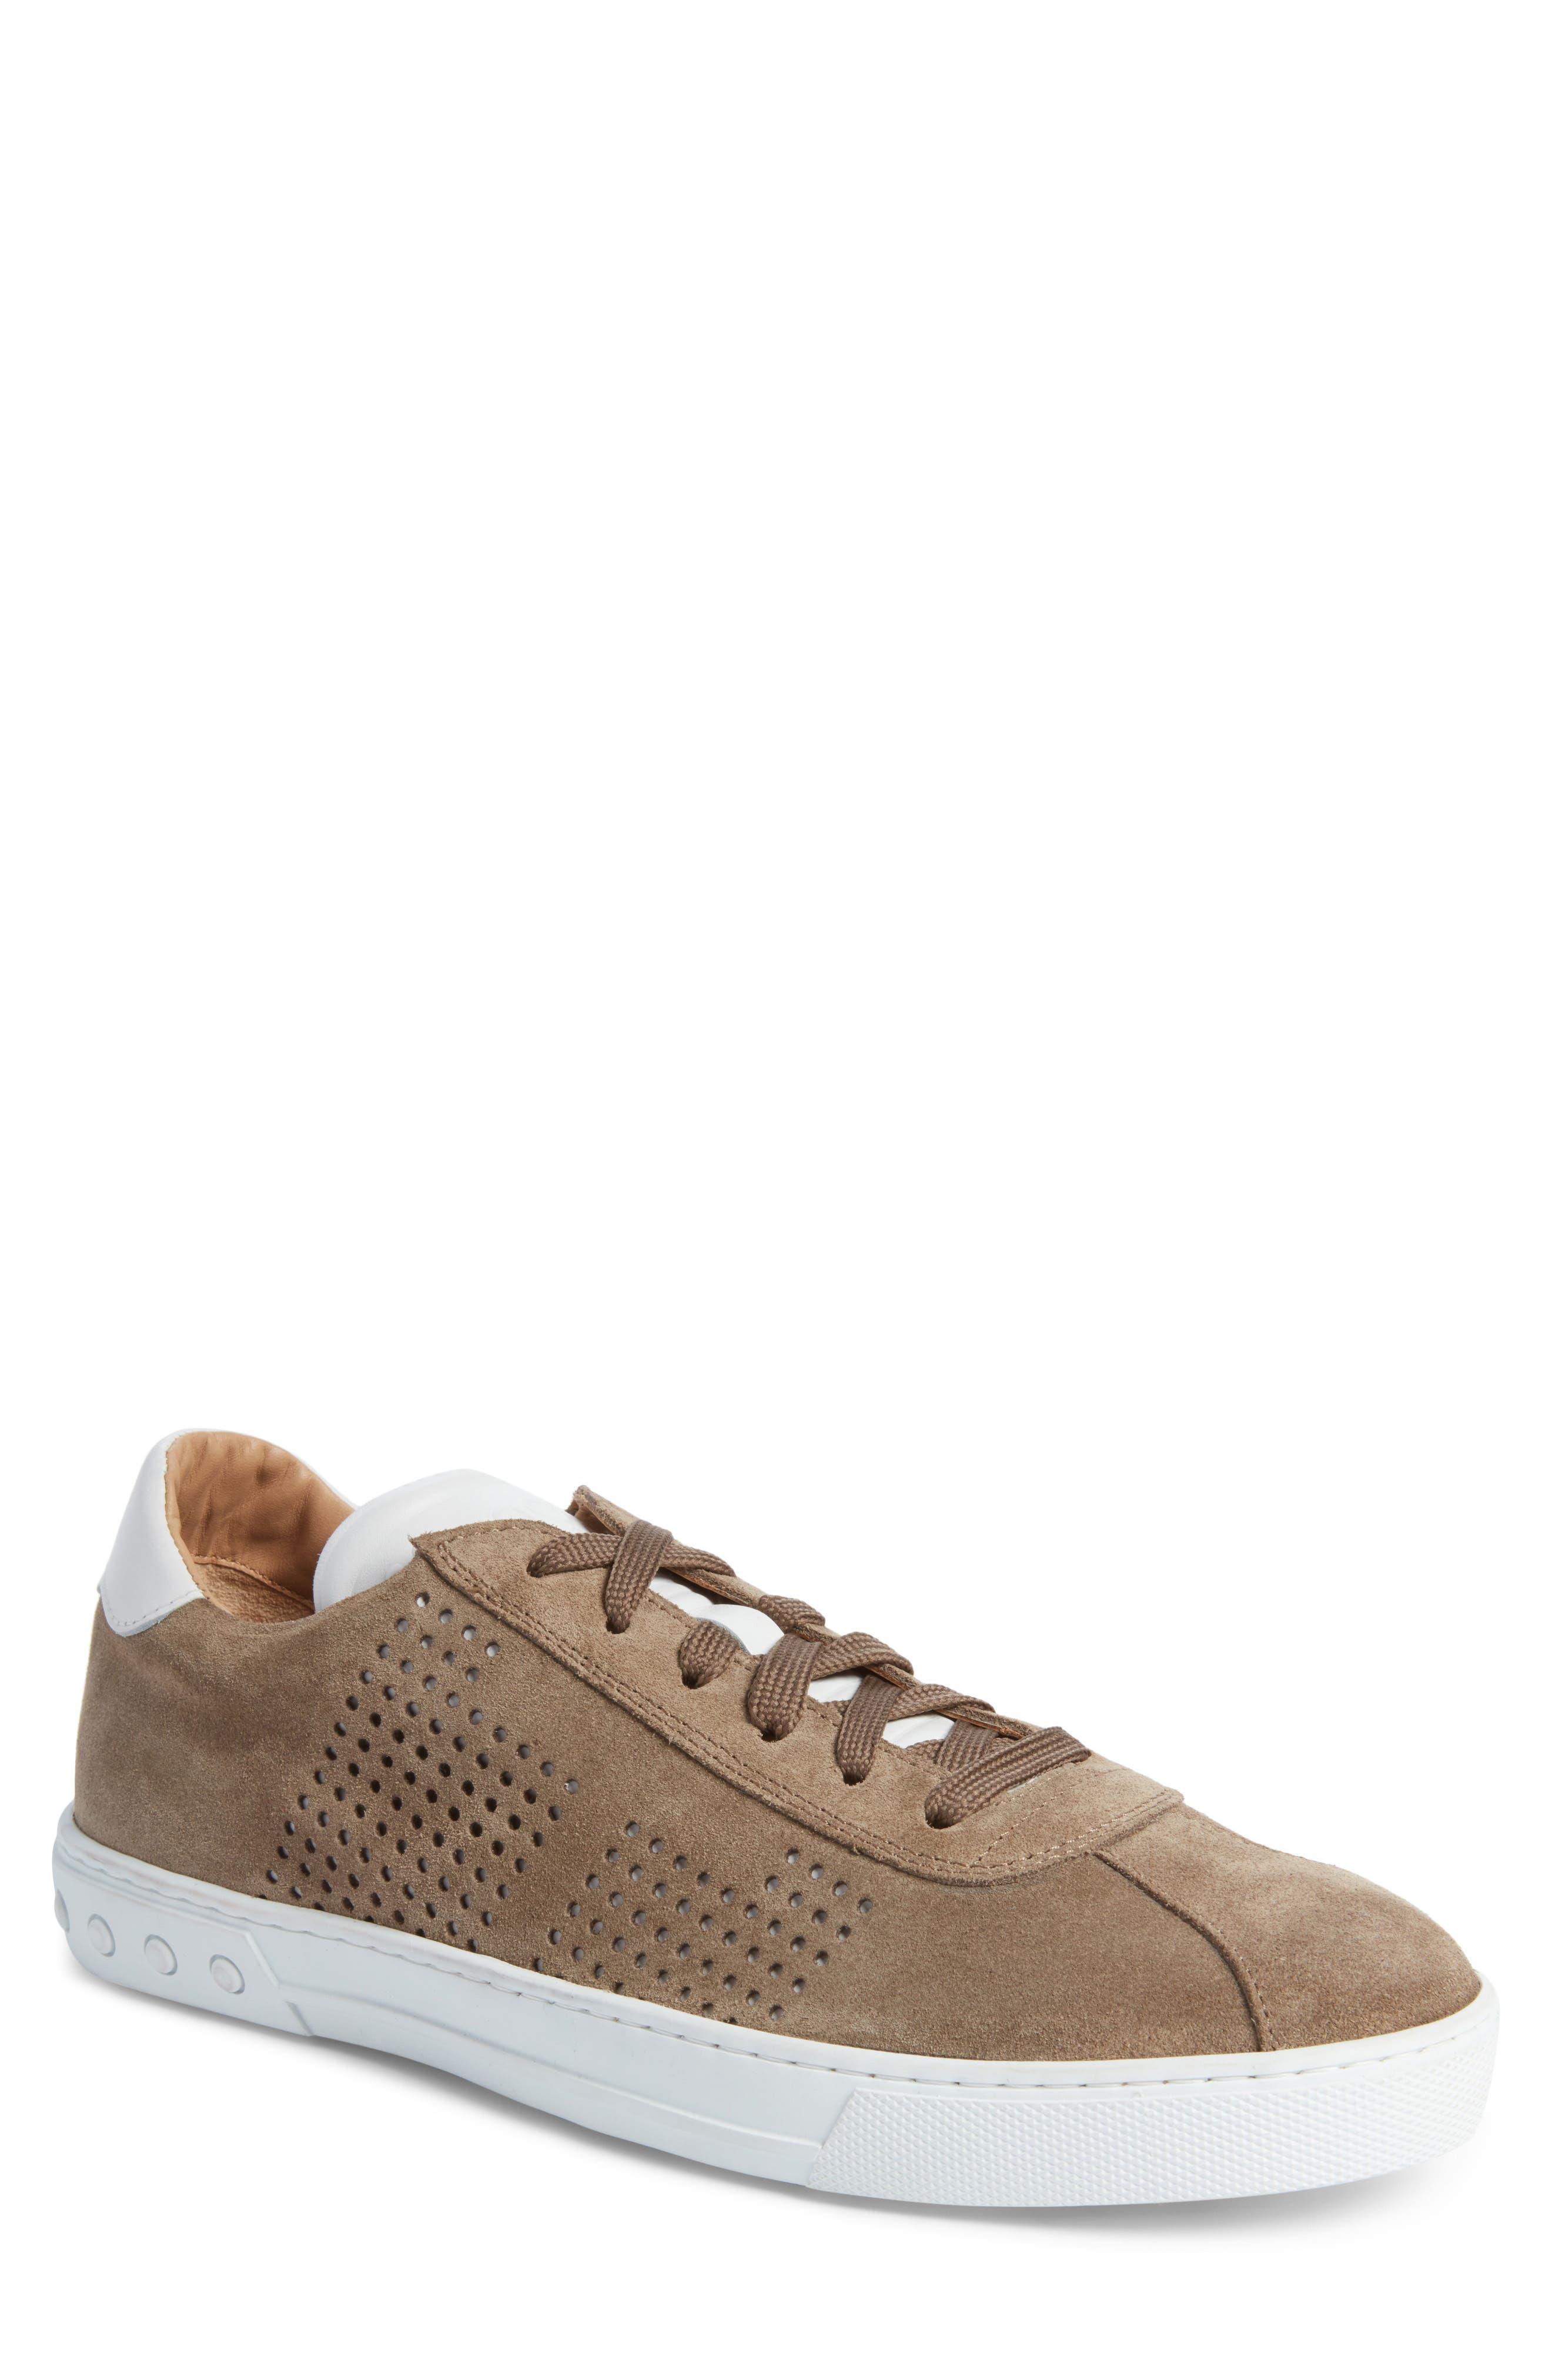 Cassetta Sneaker,                         Main,                         color, 237